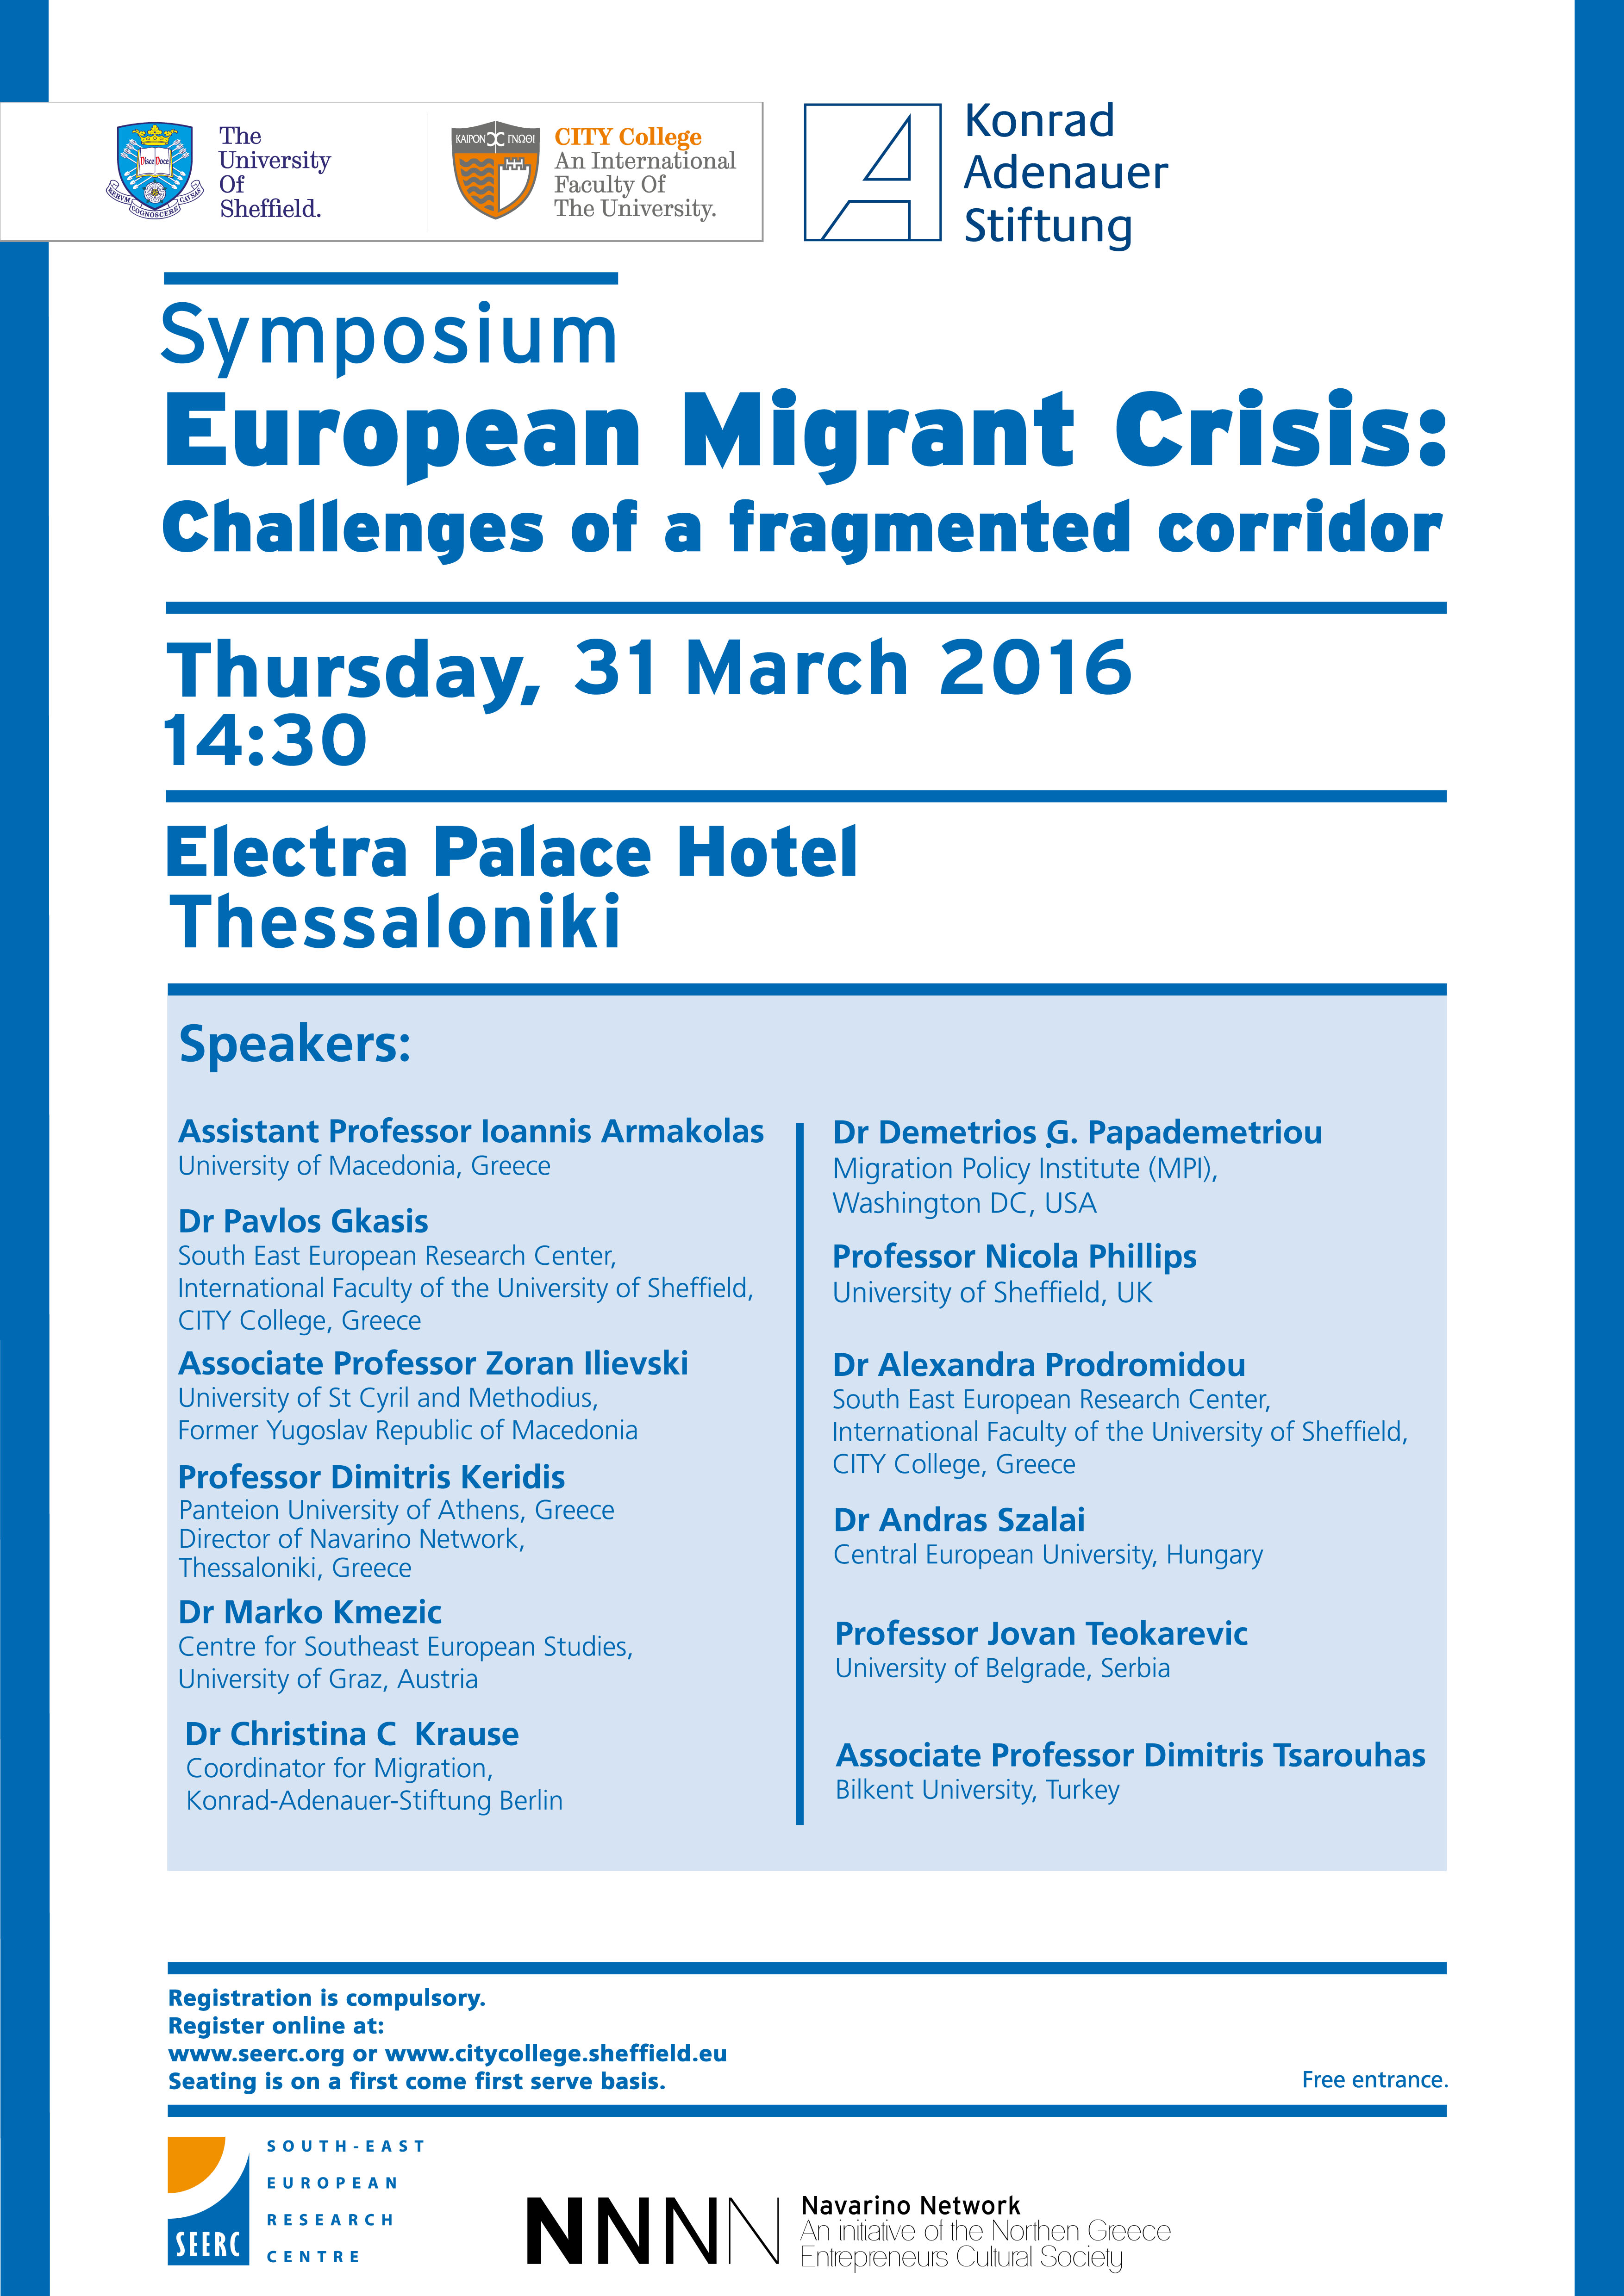 Symposium: European Migrant Crisis: Challenges of a fragmented corridor (31 March 2016)